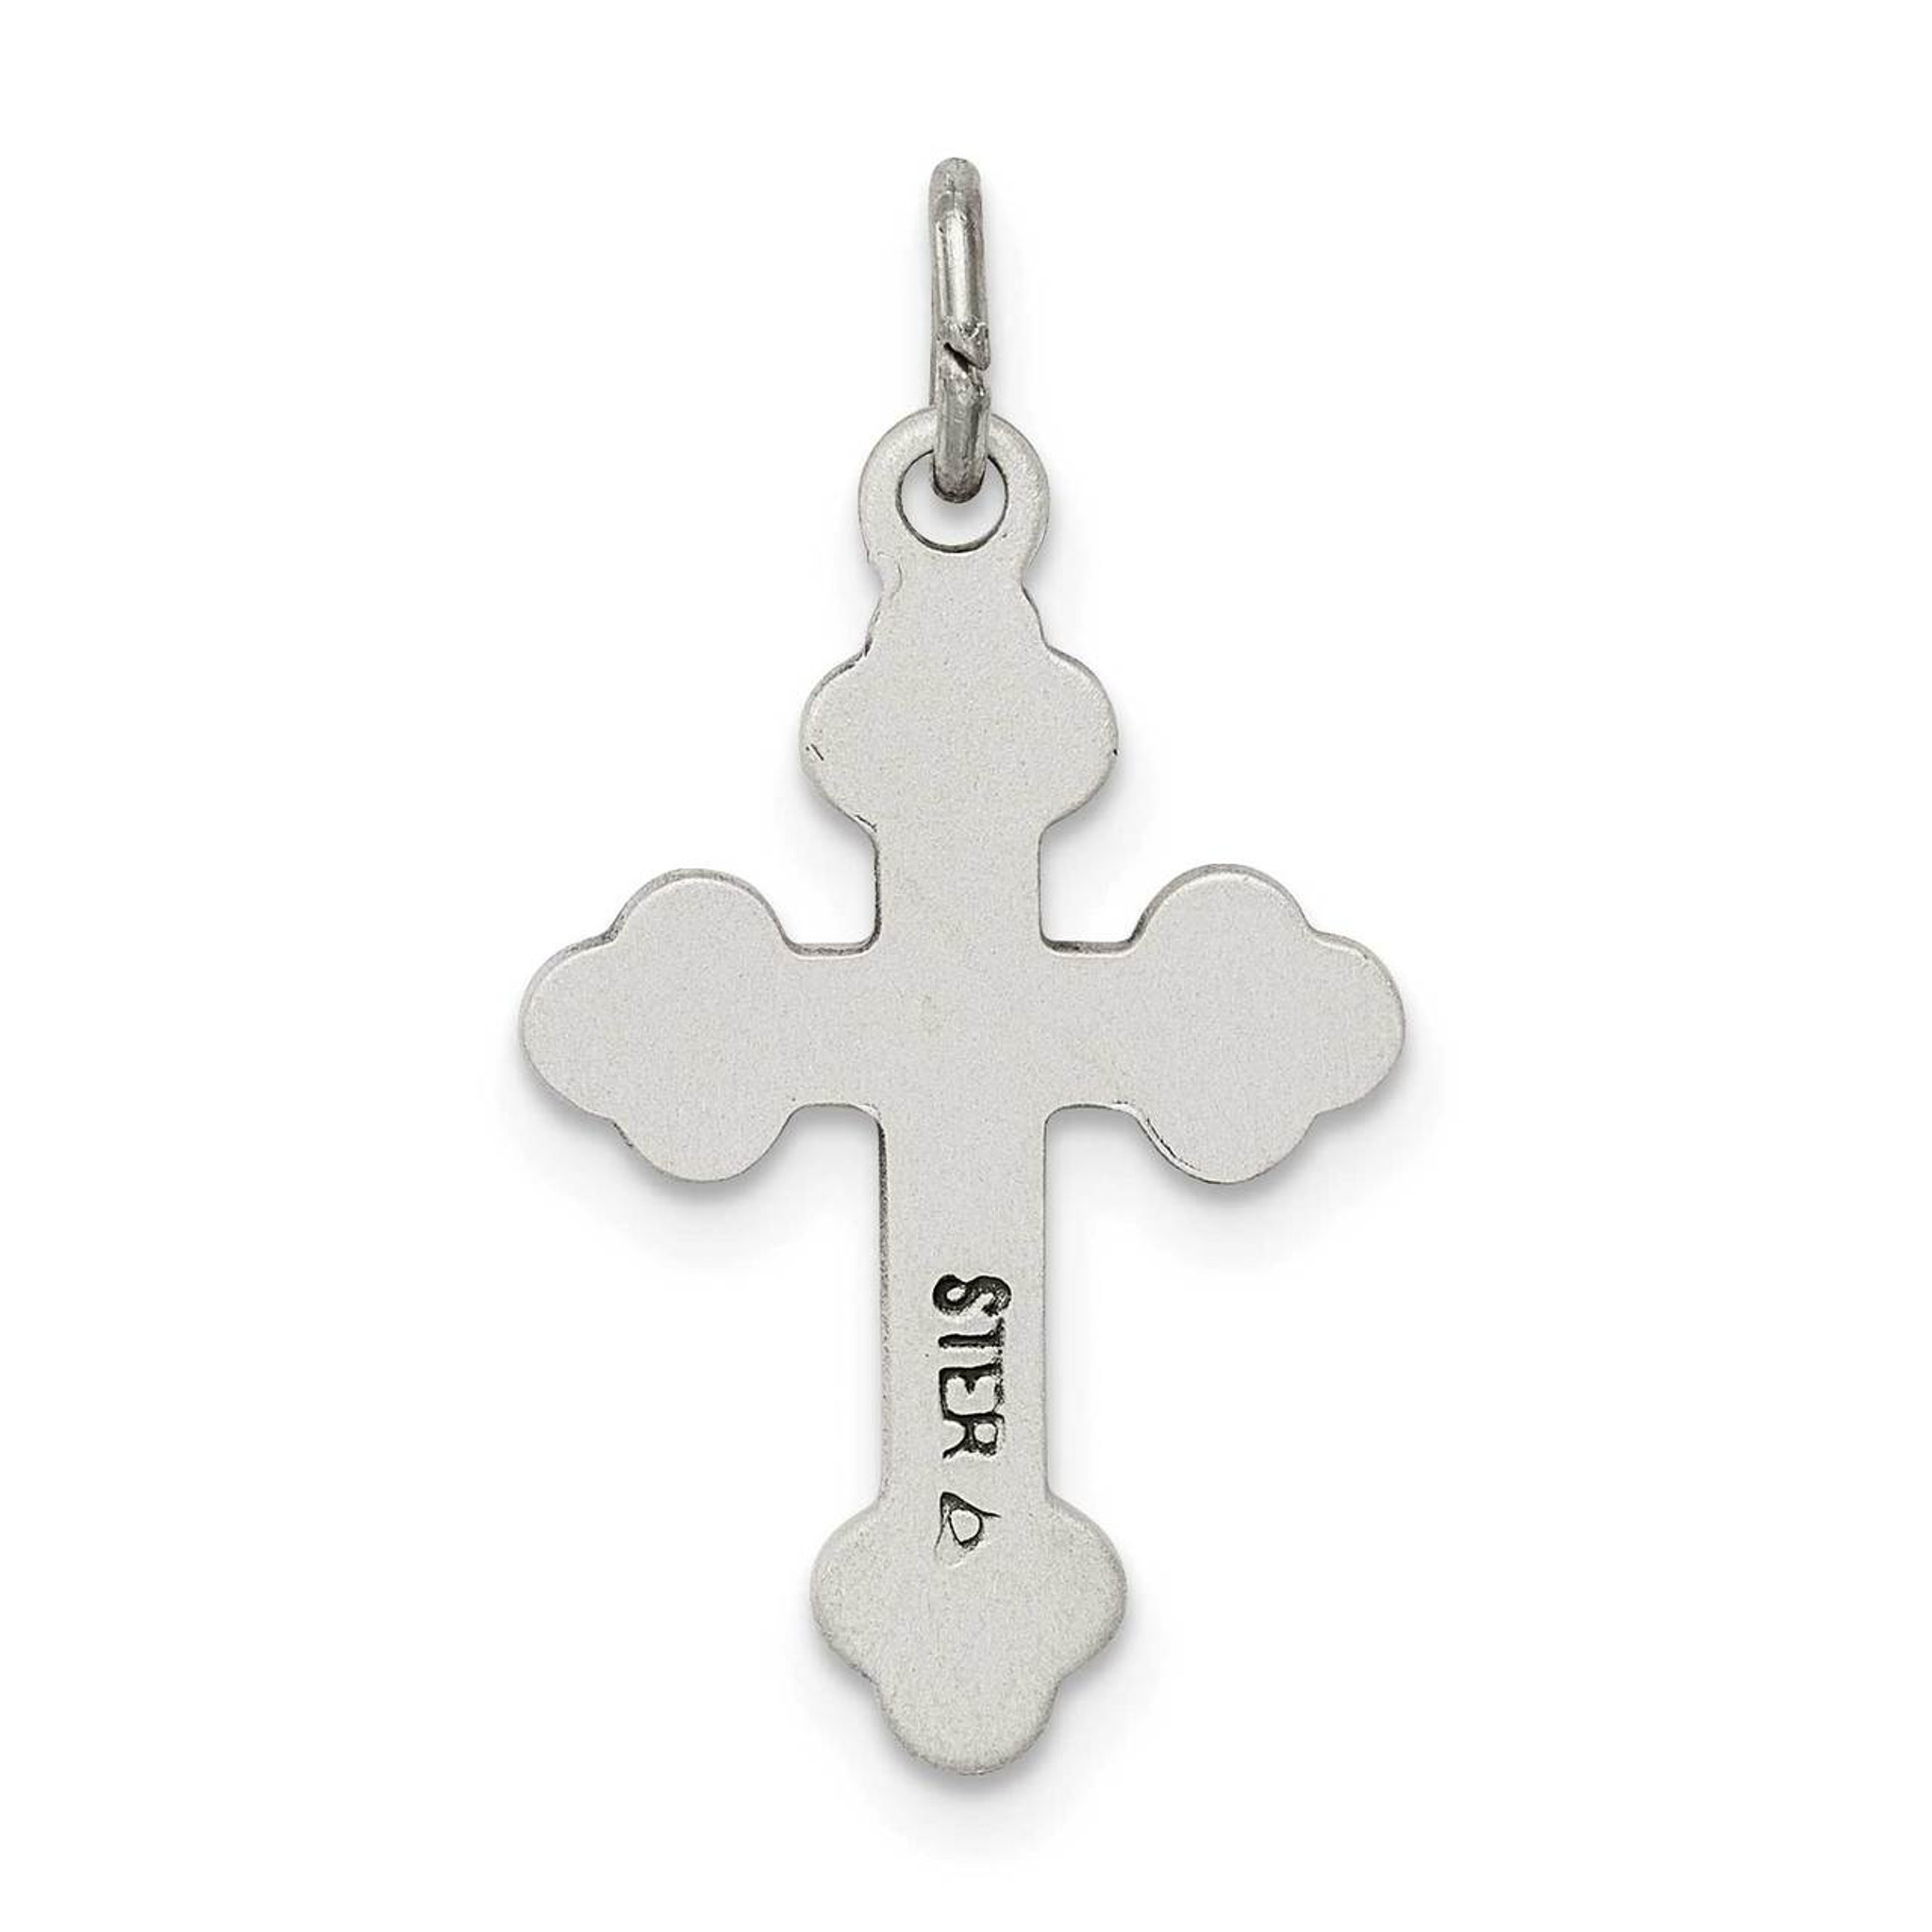 Antique Diamond-cut Solid Budded Cross Charm Pendant 925 Sterling Silver